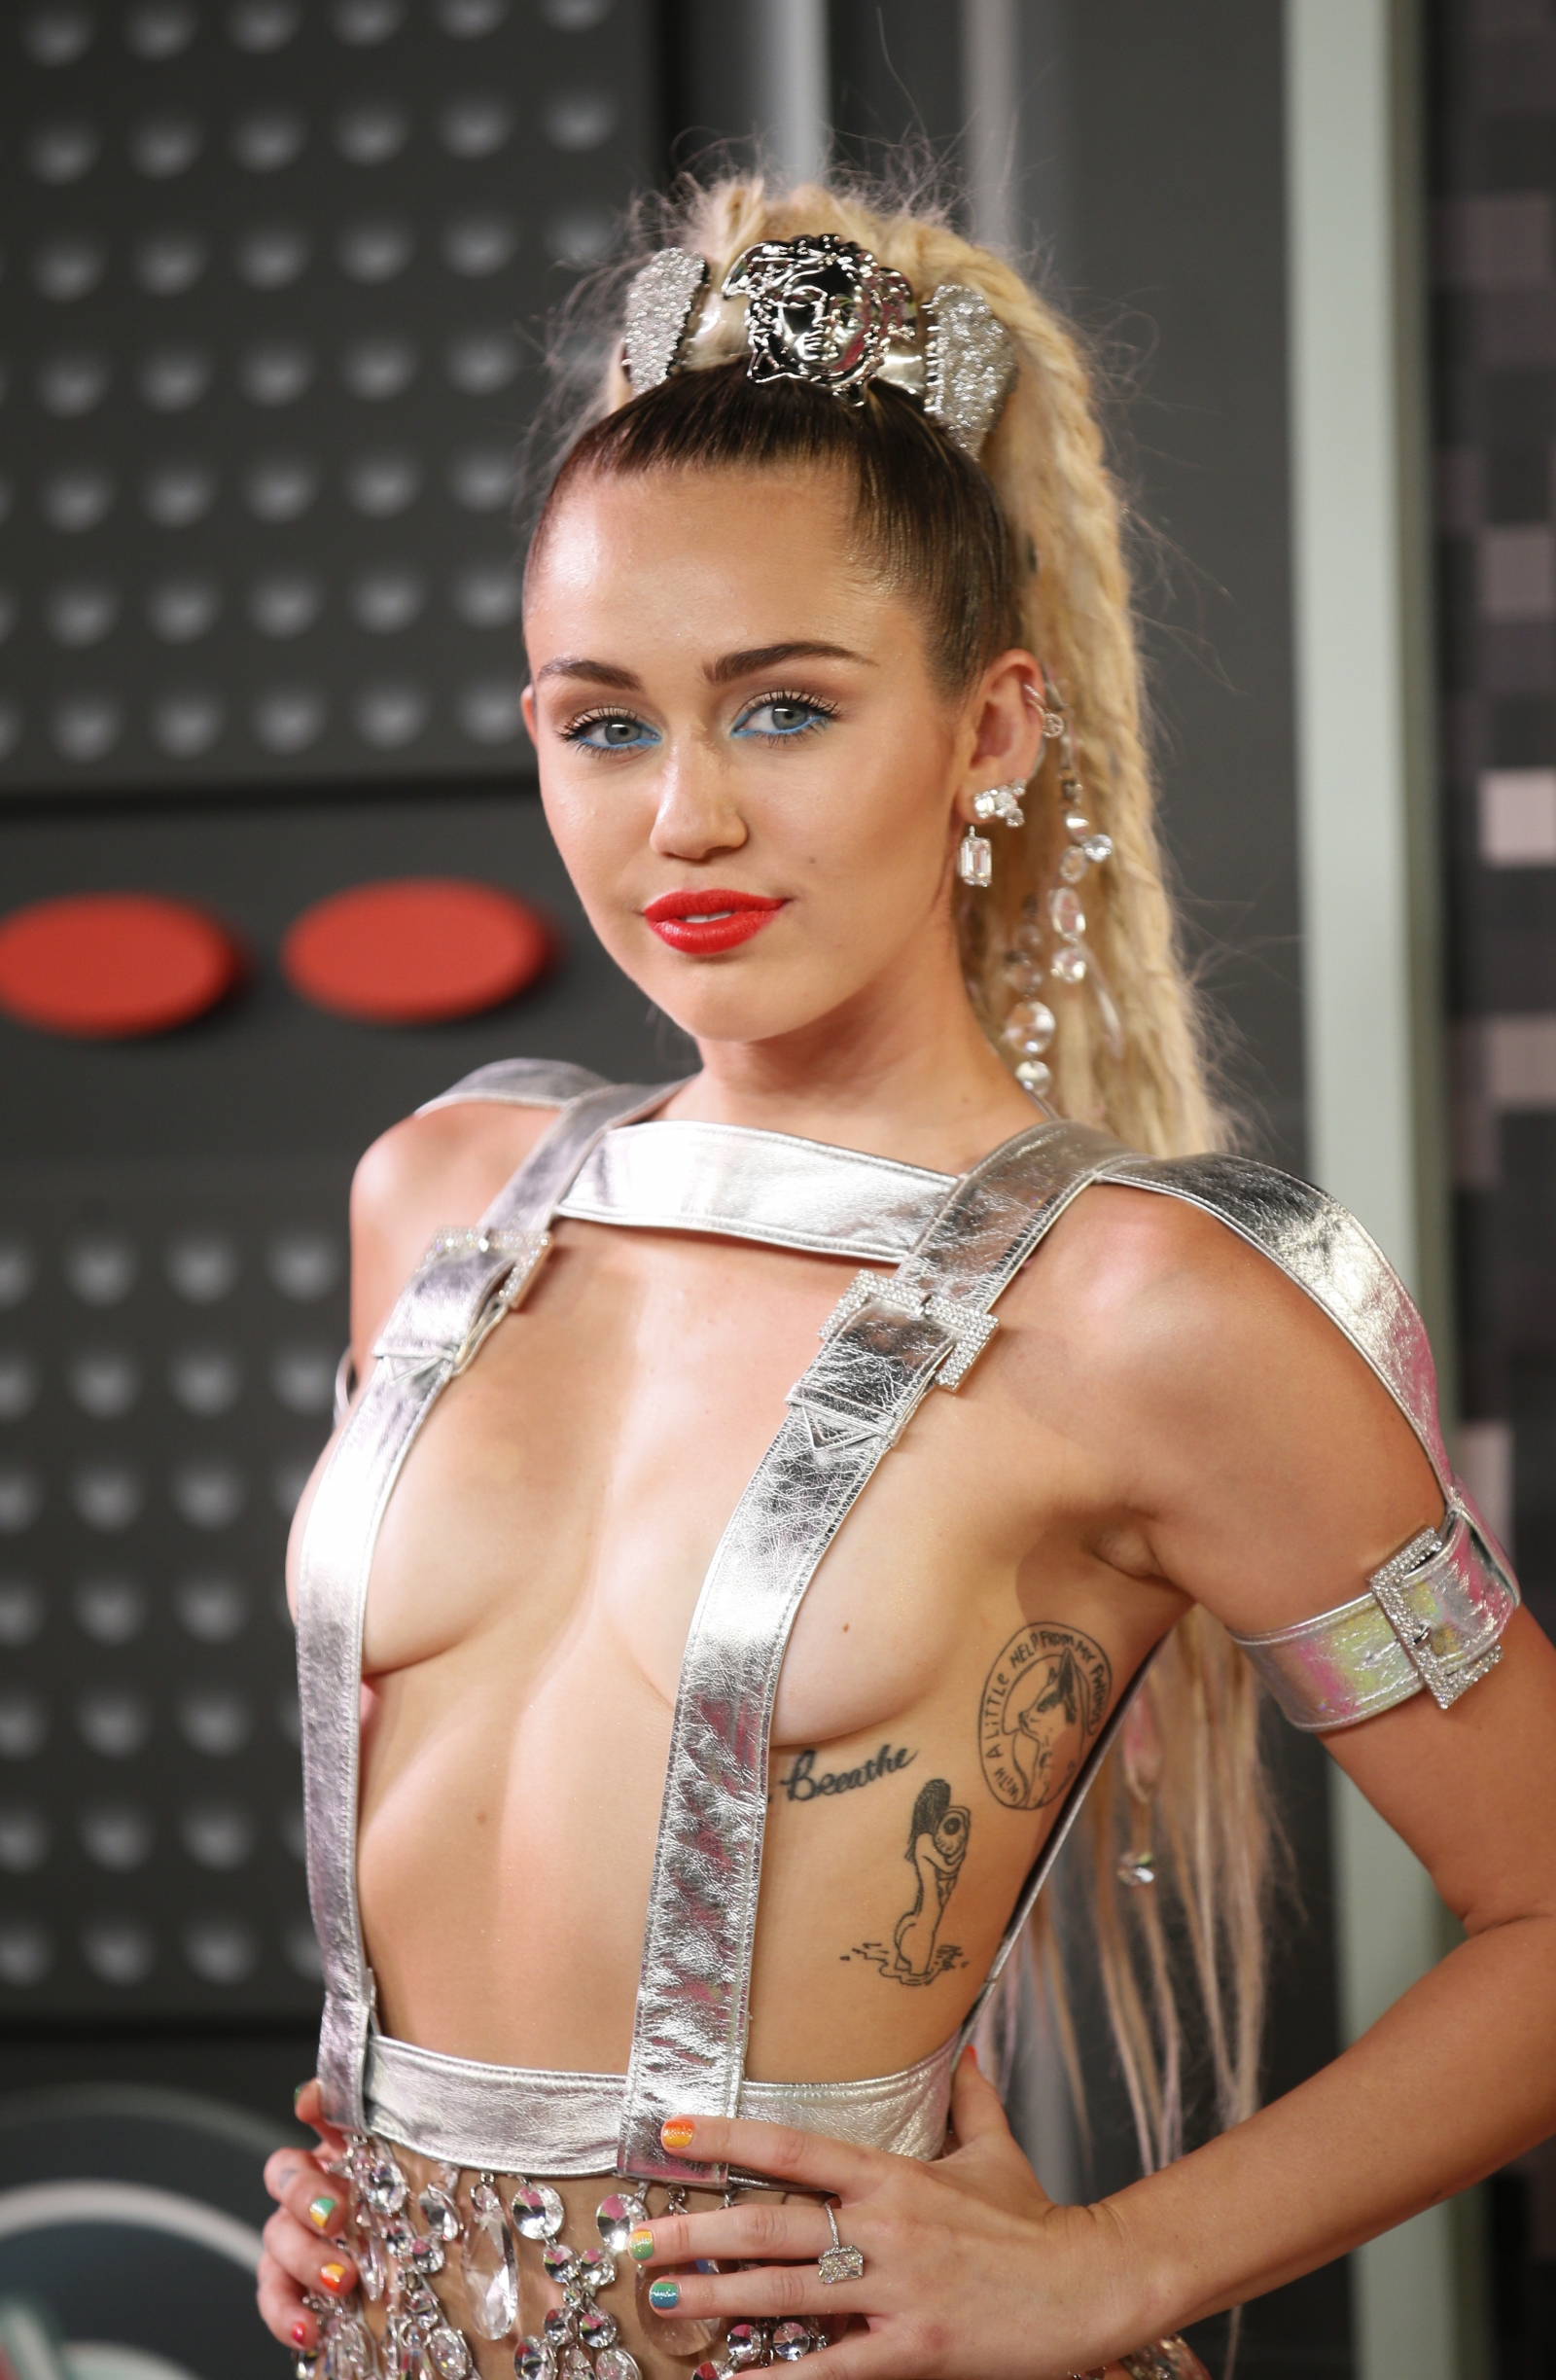 Mtv Vma 2015 Did Miley Cyrus Just Flash A Nipple For -8908